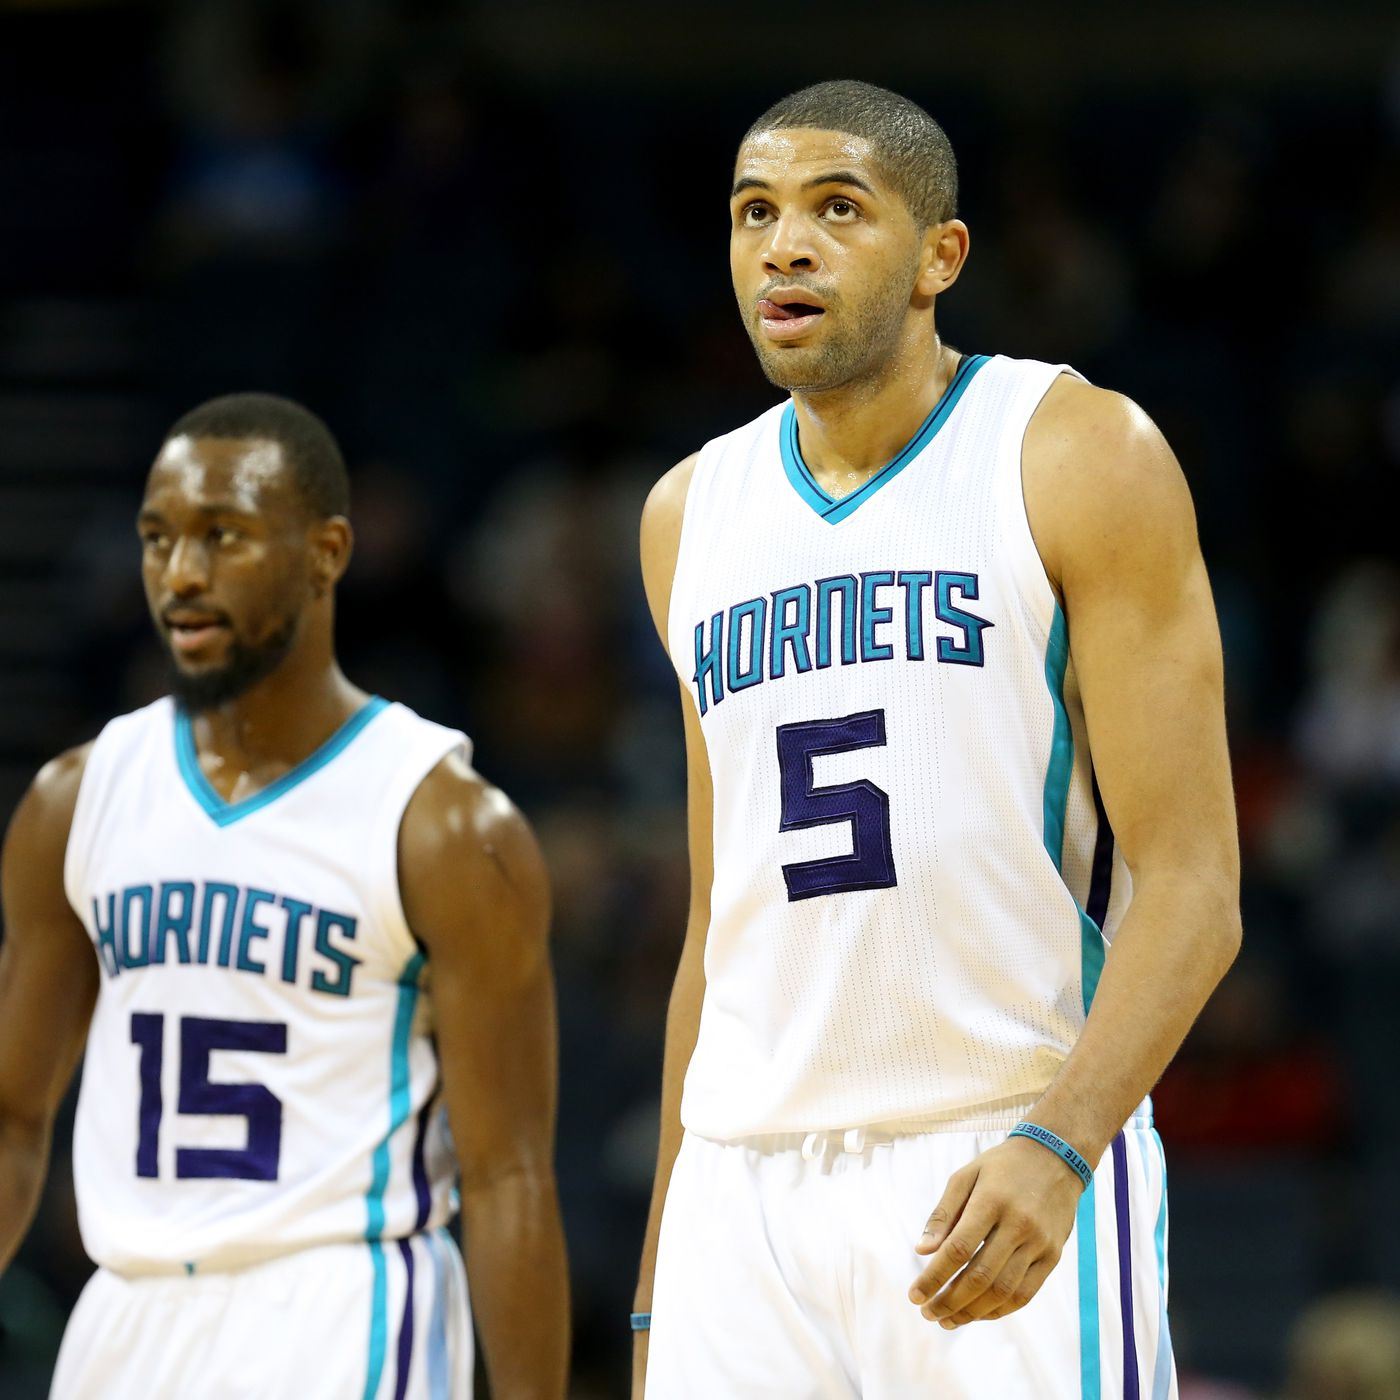 a5f4d918860e Charlotte Hornets 2016-17 Season Preview - At The Hive